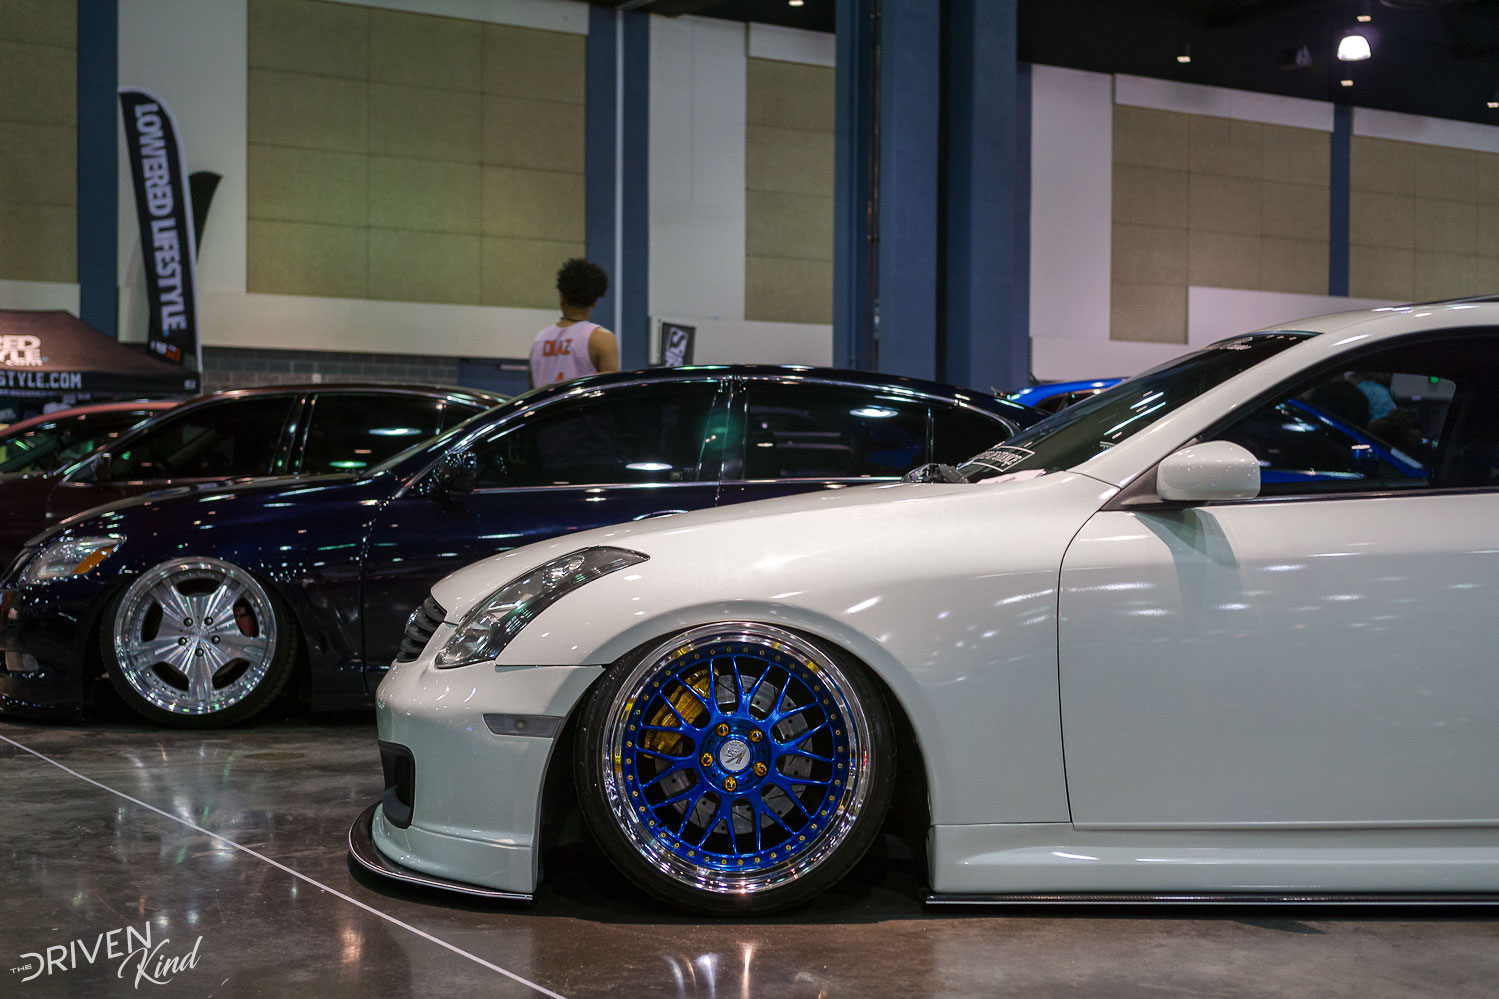 Infiniti G35 STANCENATION FLORIDA PALM BEACH CONVENTION CENTER 2017 Pt. 2 The Driven Kind Coverage